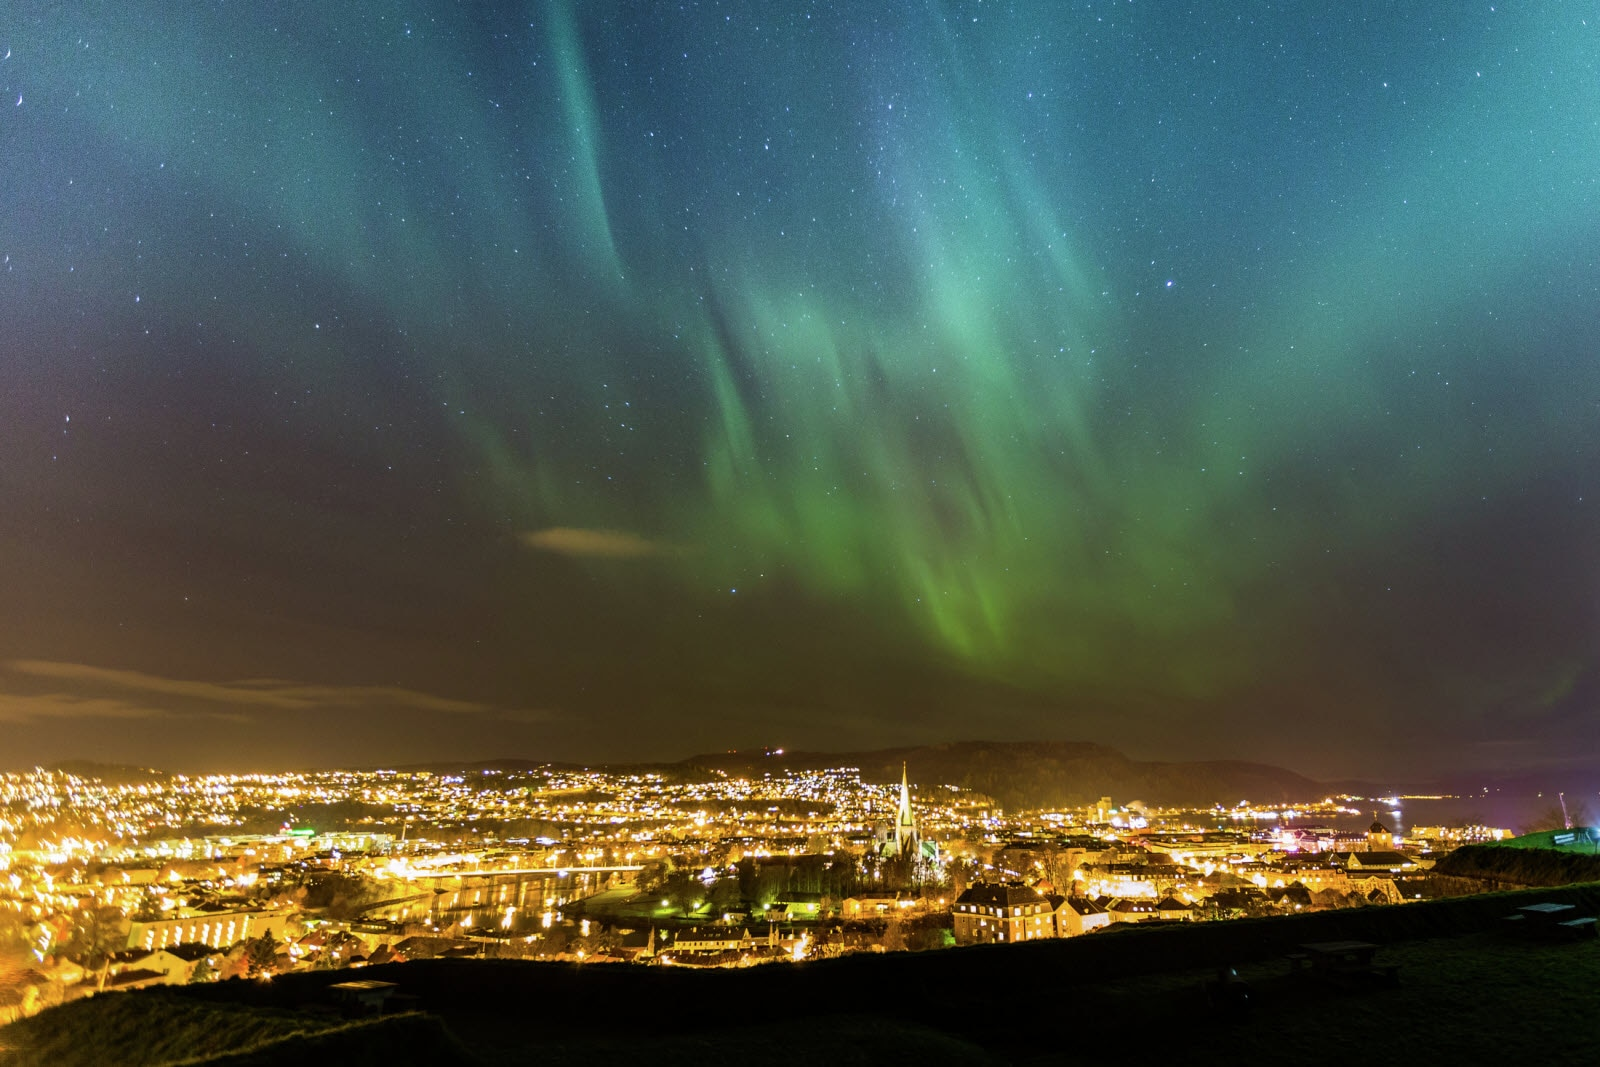 Northern-lights-over-Trondheim-112013-99-0001_2200.jpg